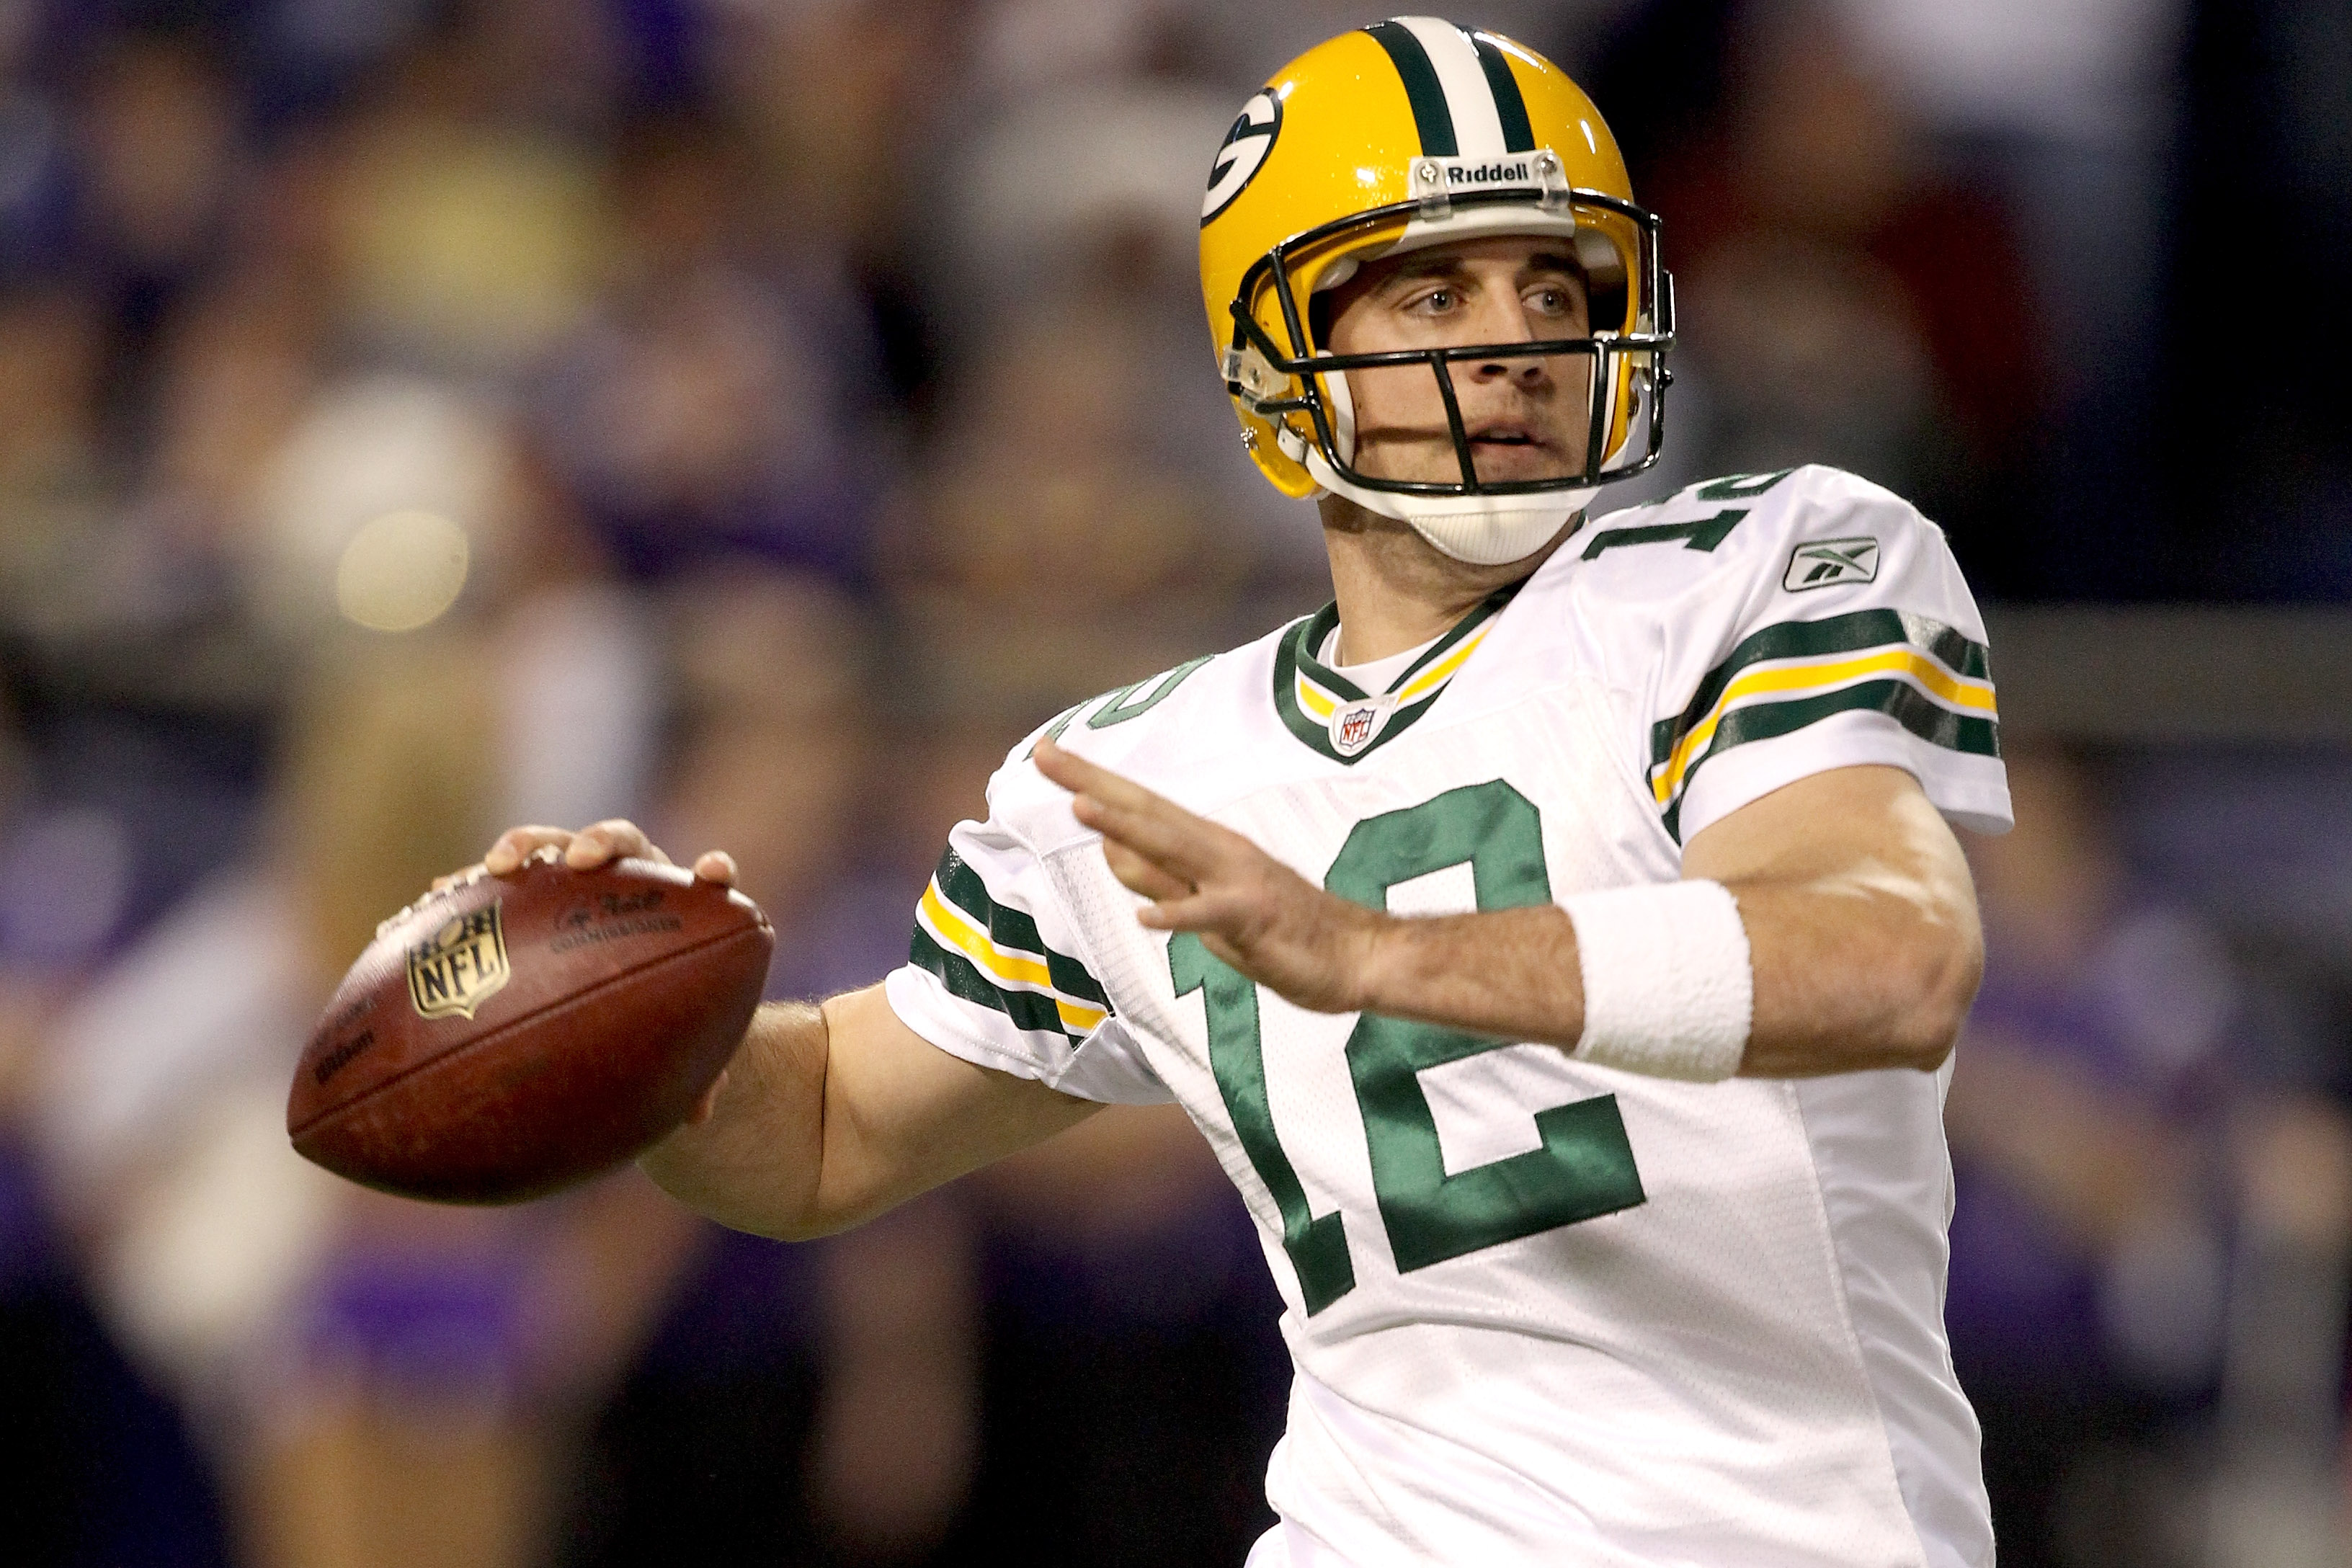 Rodgers has the playoffs closing in on the playoffs yet again.